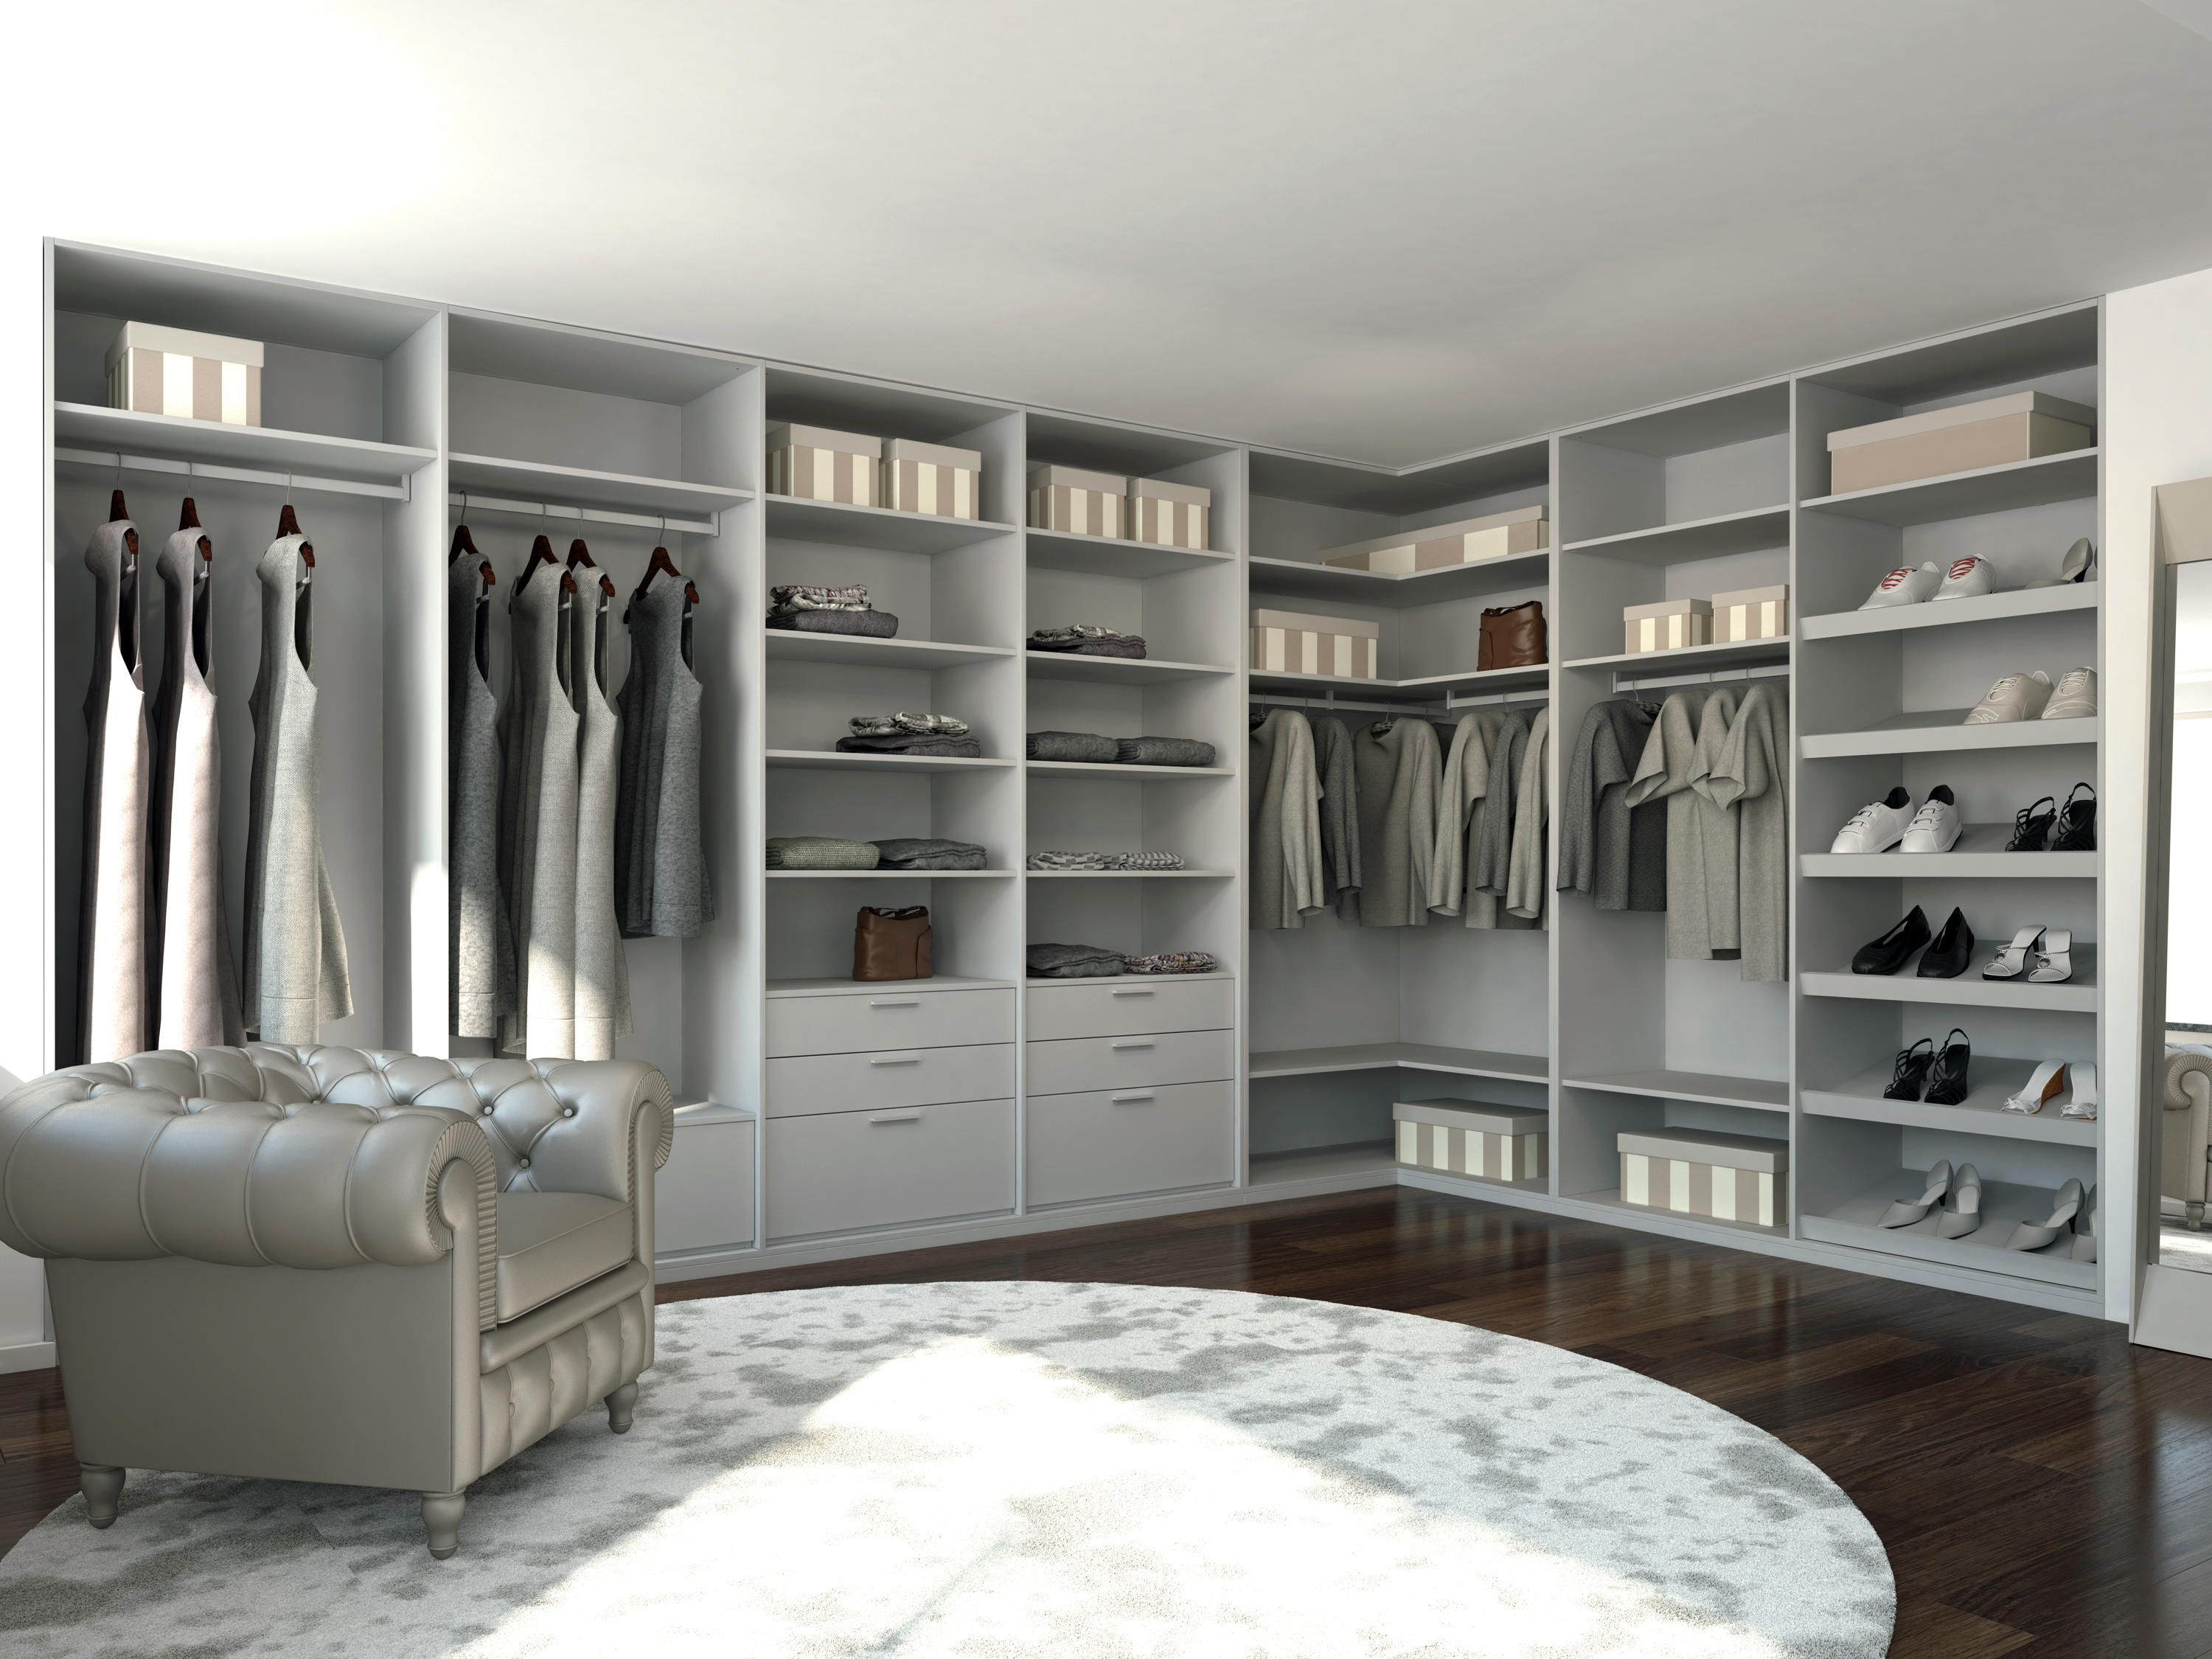 closets rooms pinterest double rhpinterestcom pn this sliding design s and small in standard was installed builtin cabinet built closet a